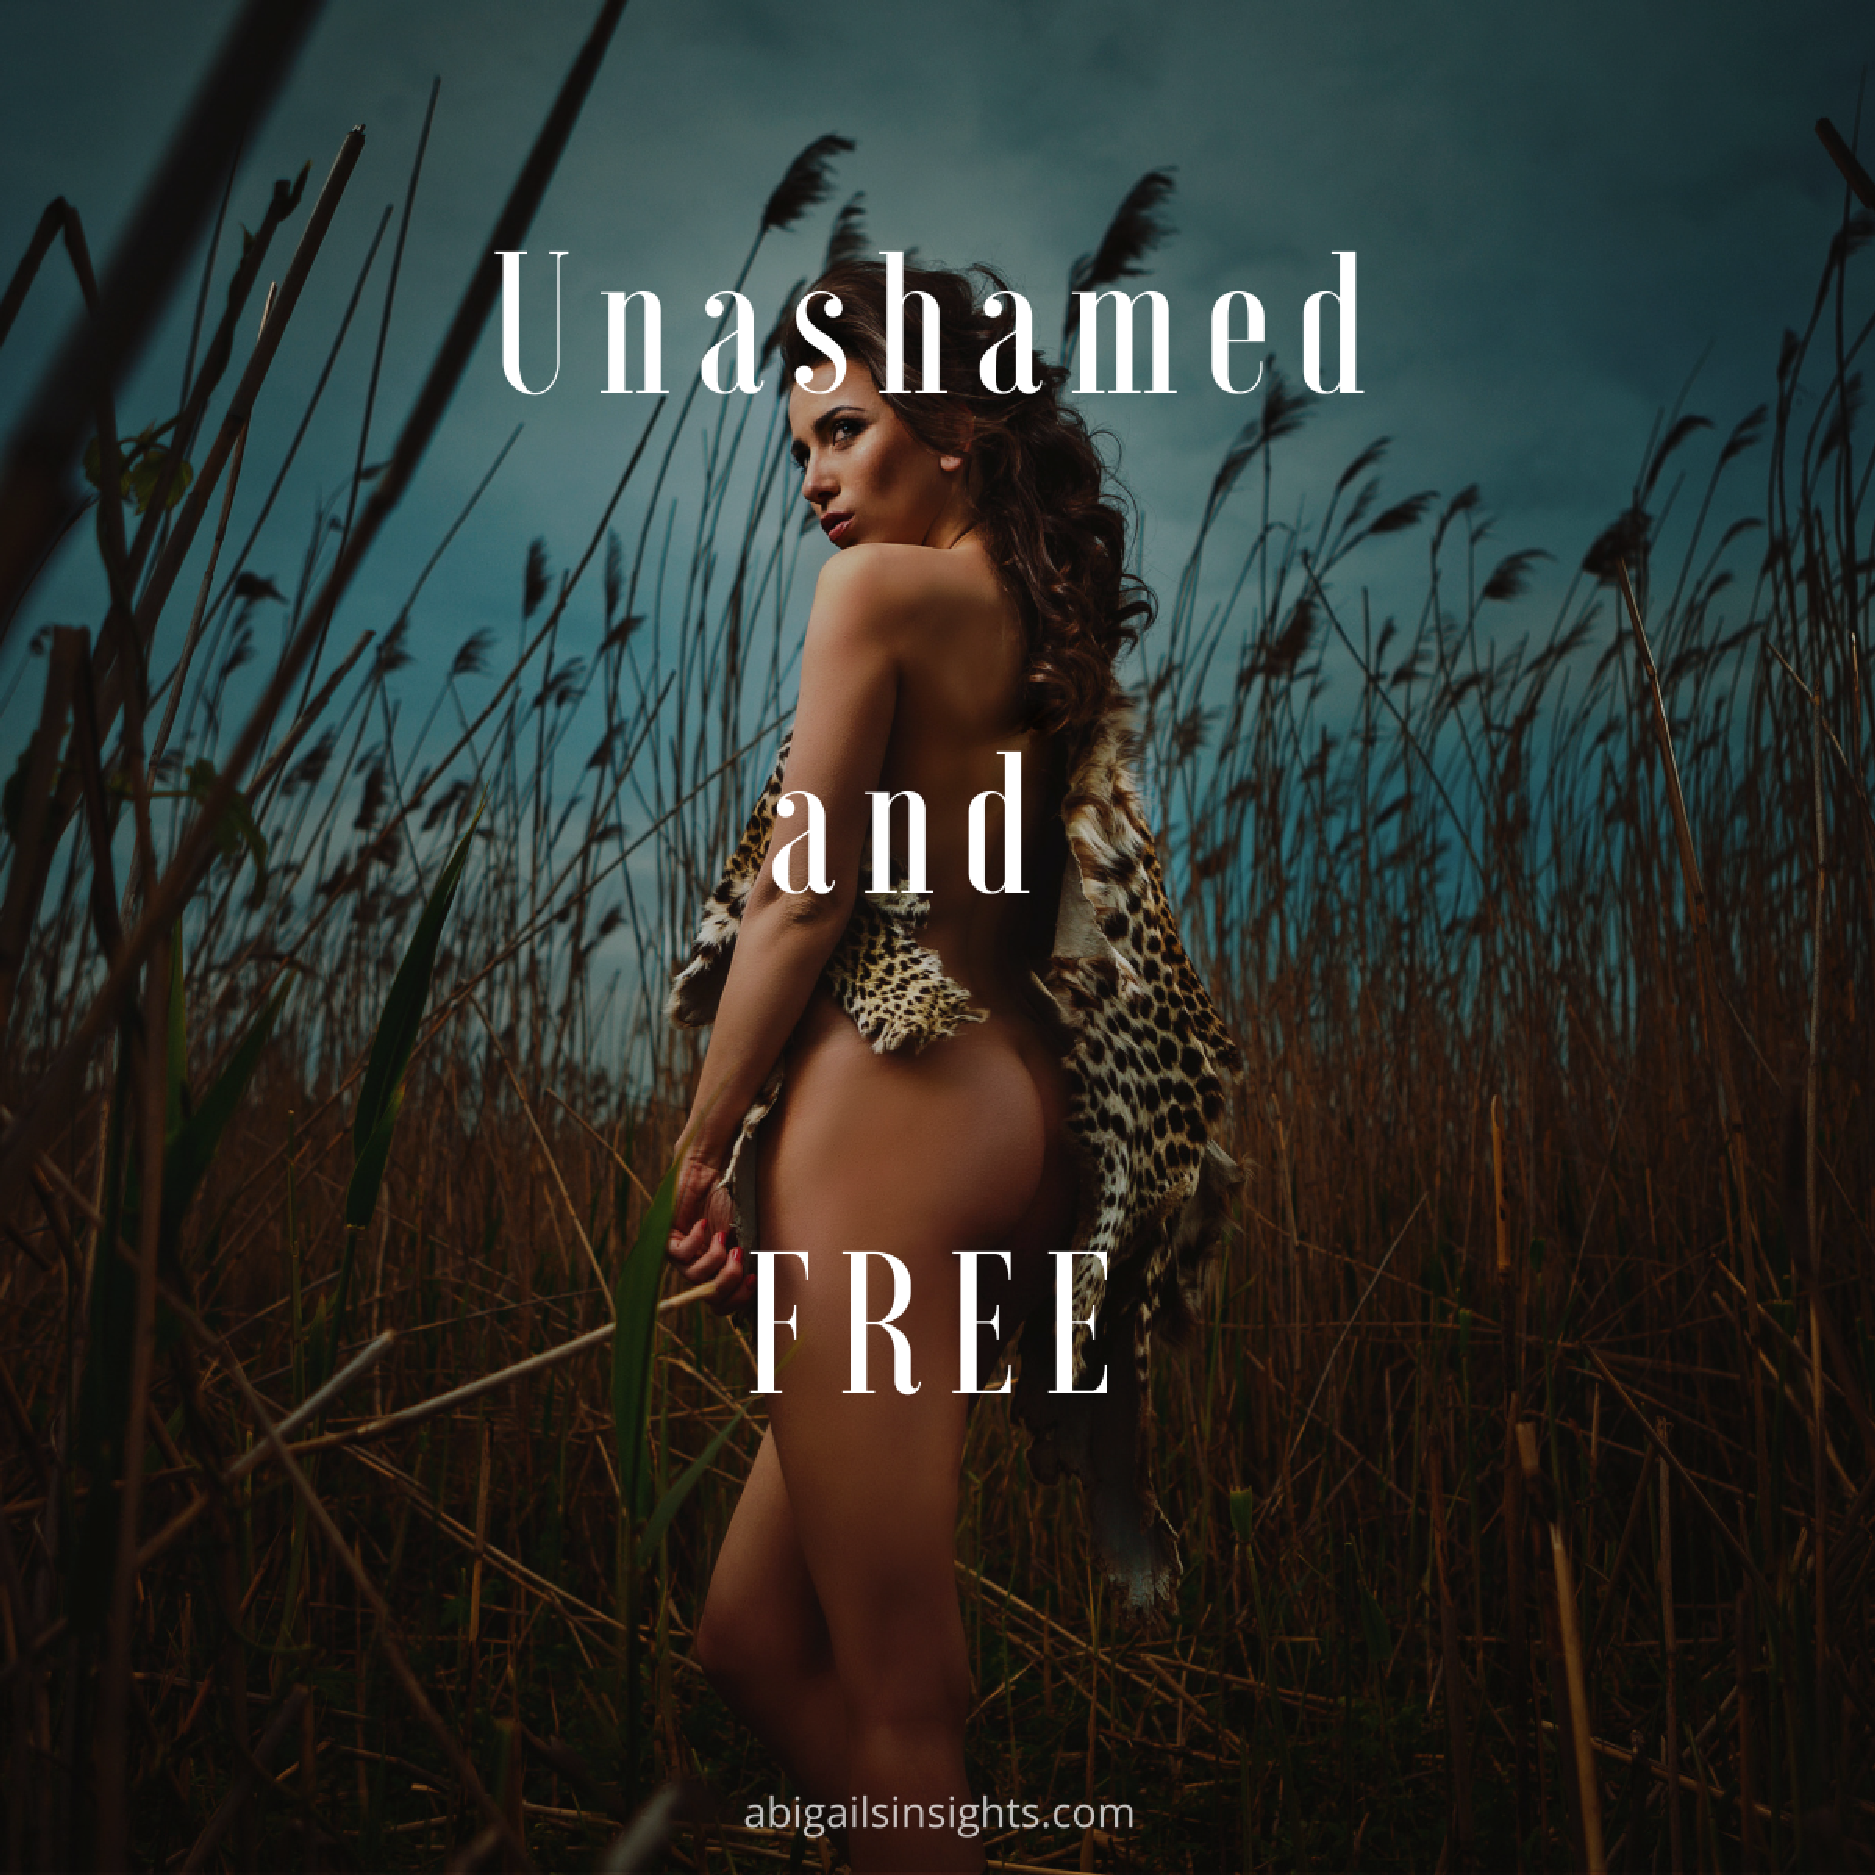 quote: Unashamed and free